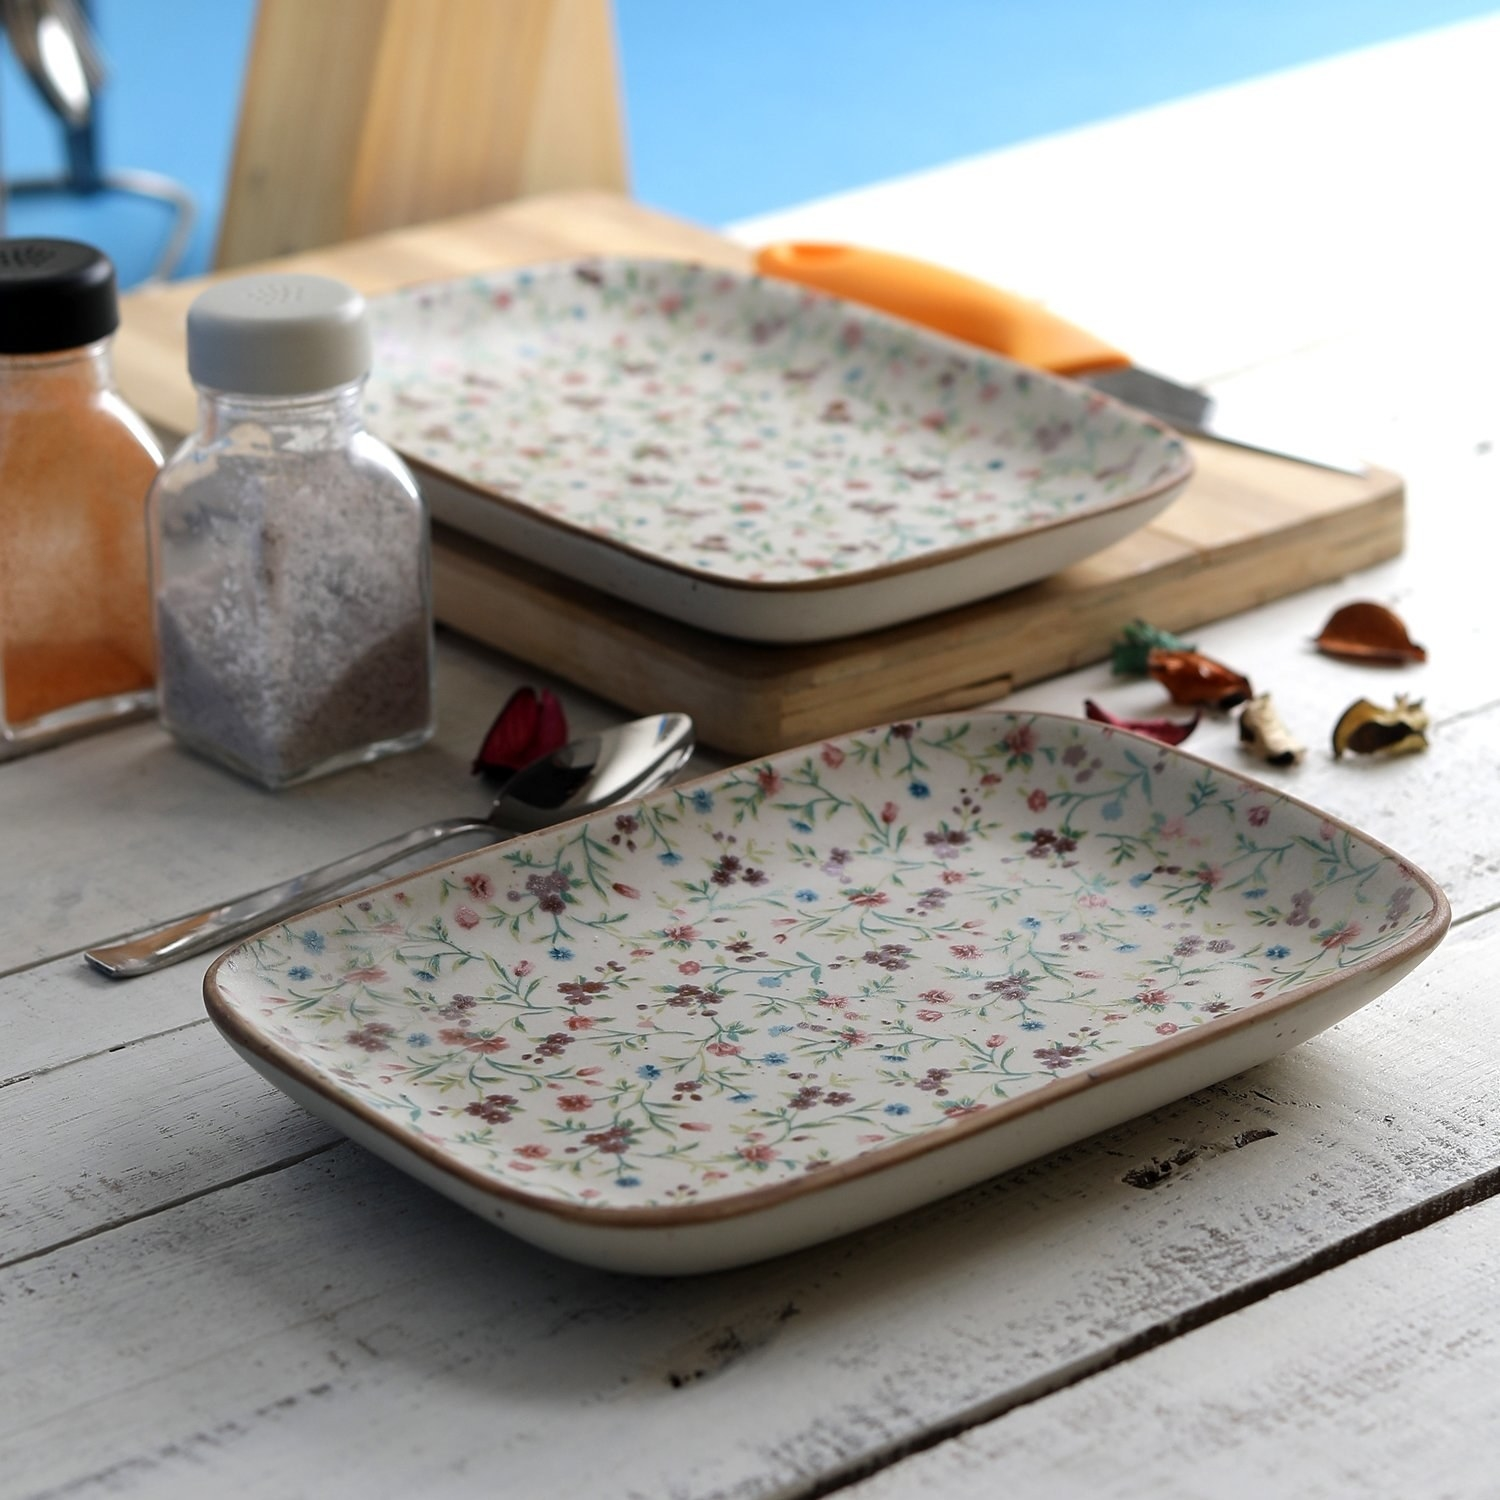 Two rectangular plates with an intricate floral print